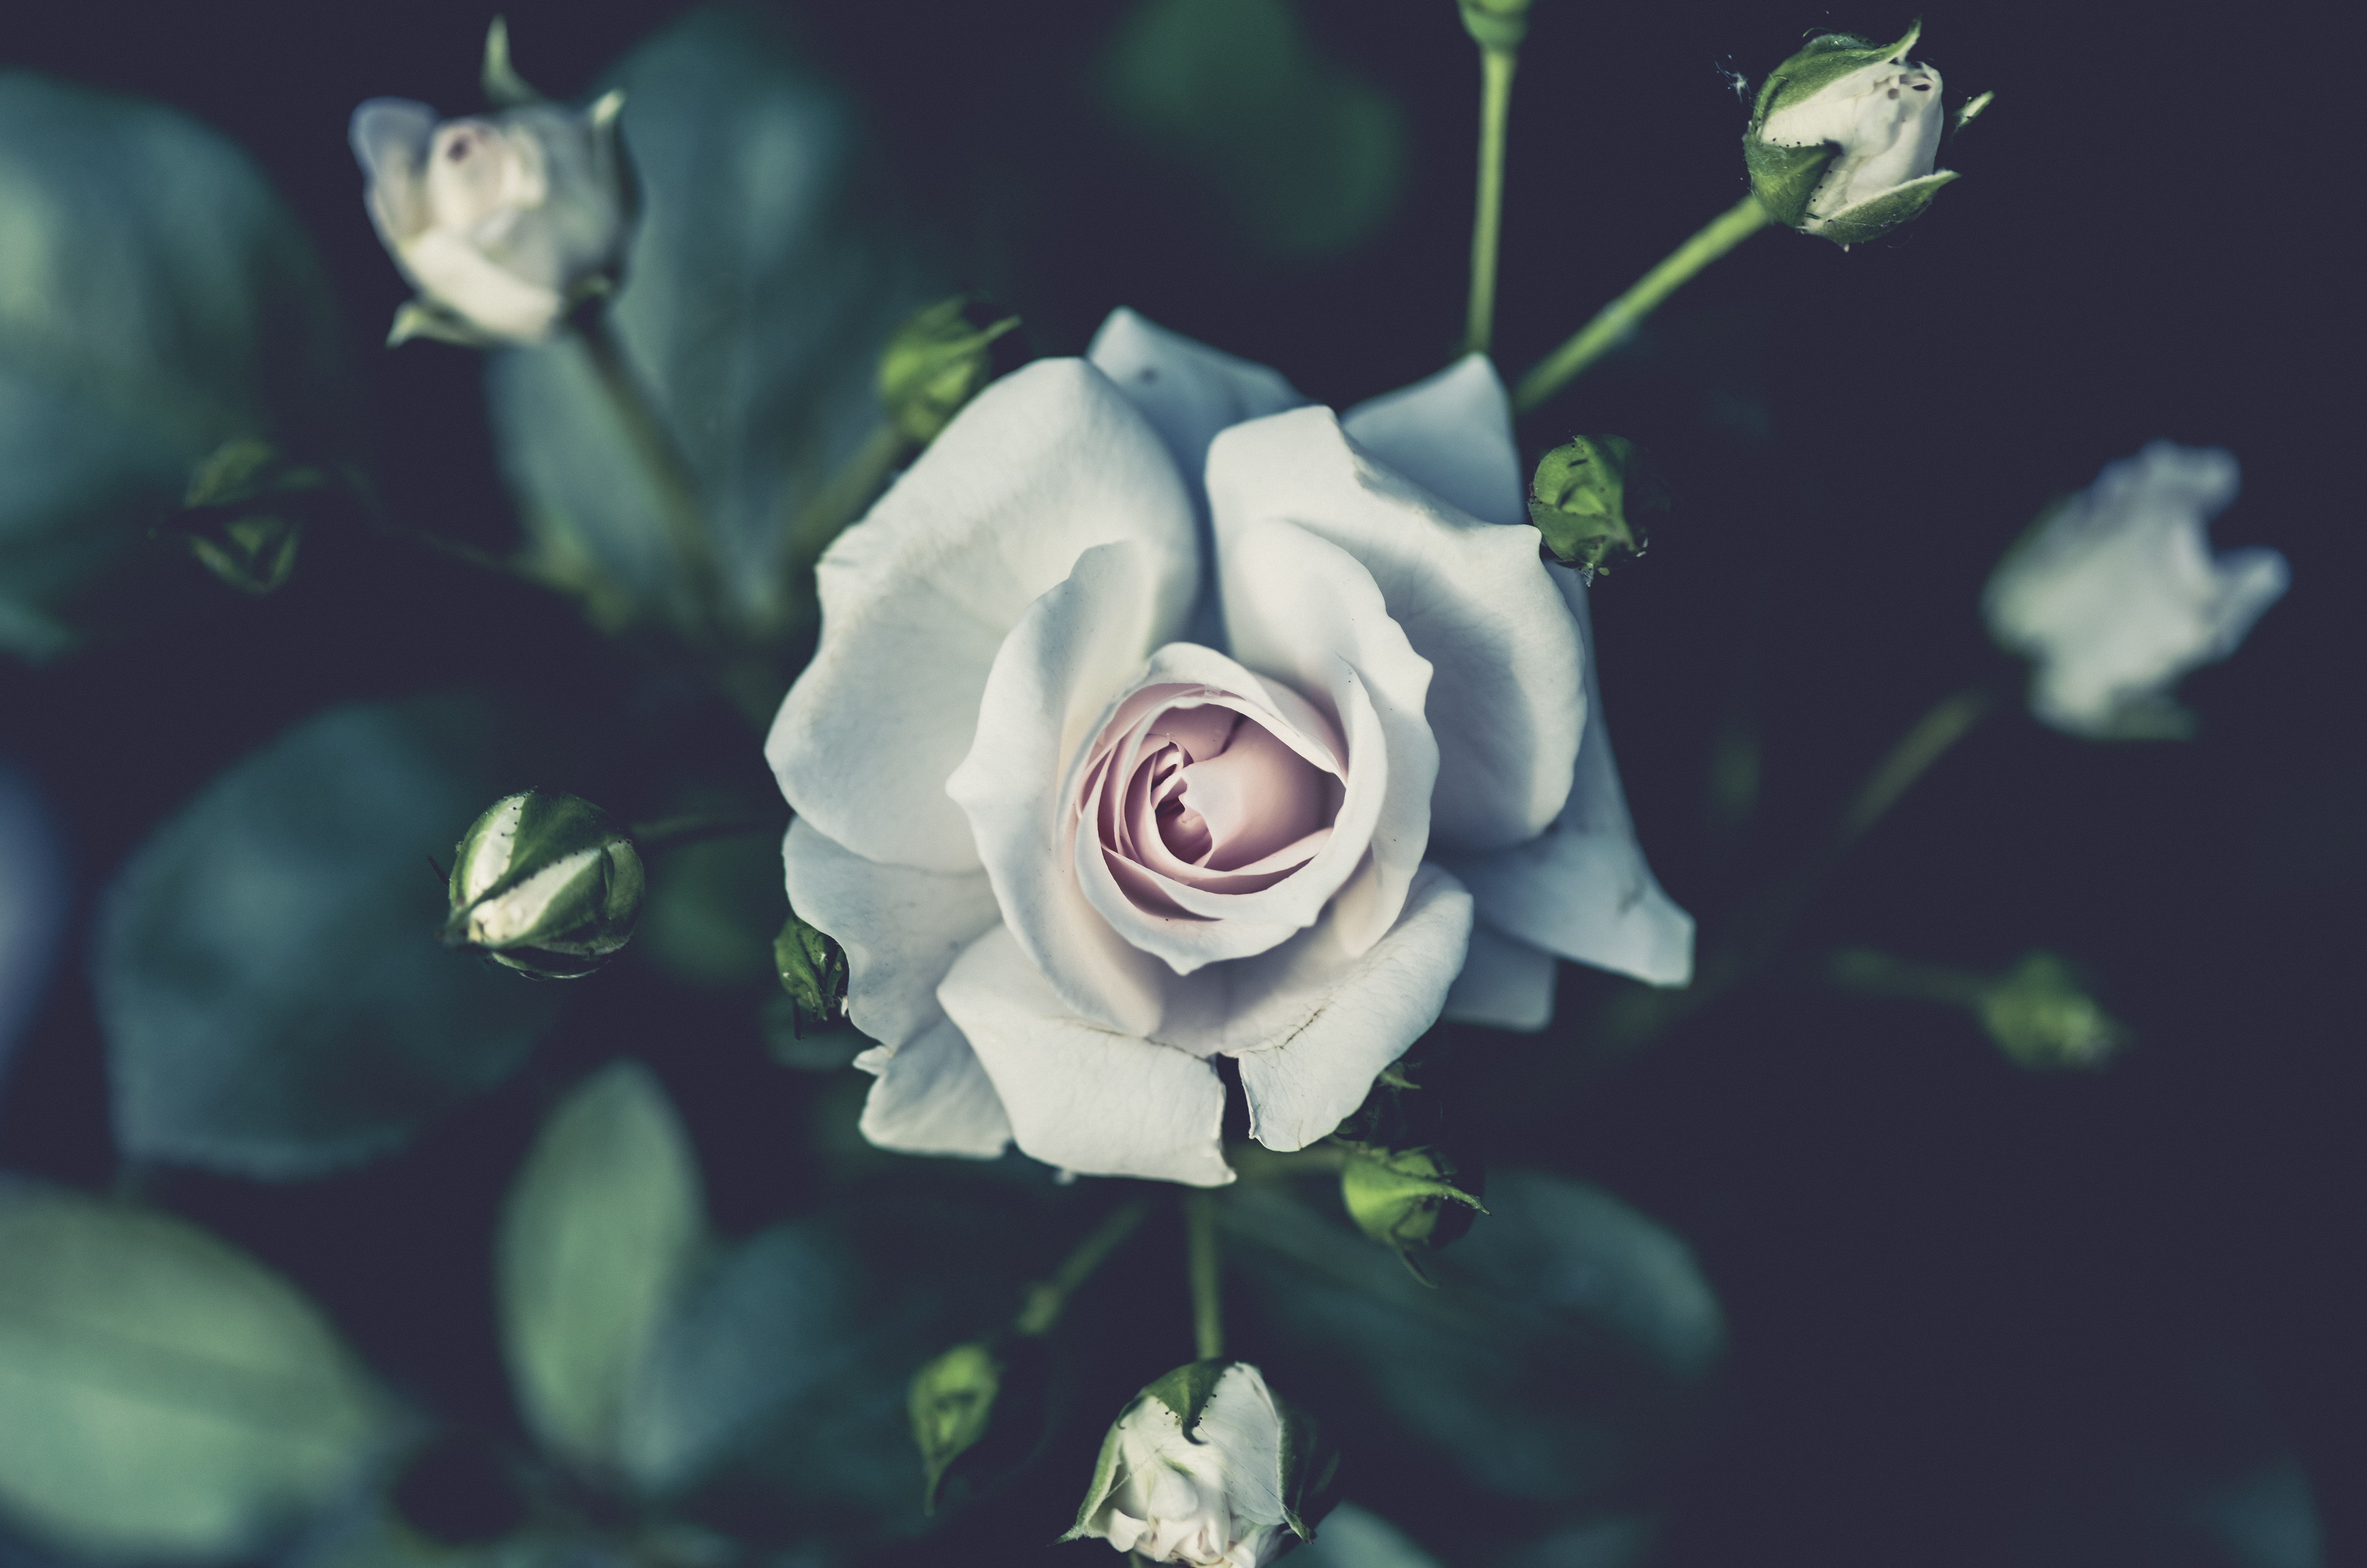 A blooming white rose surrounded by rose buds